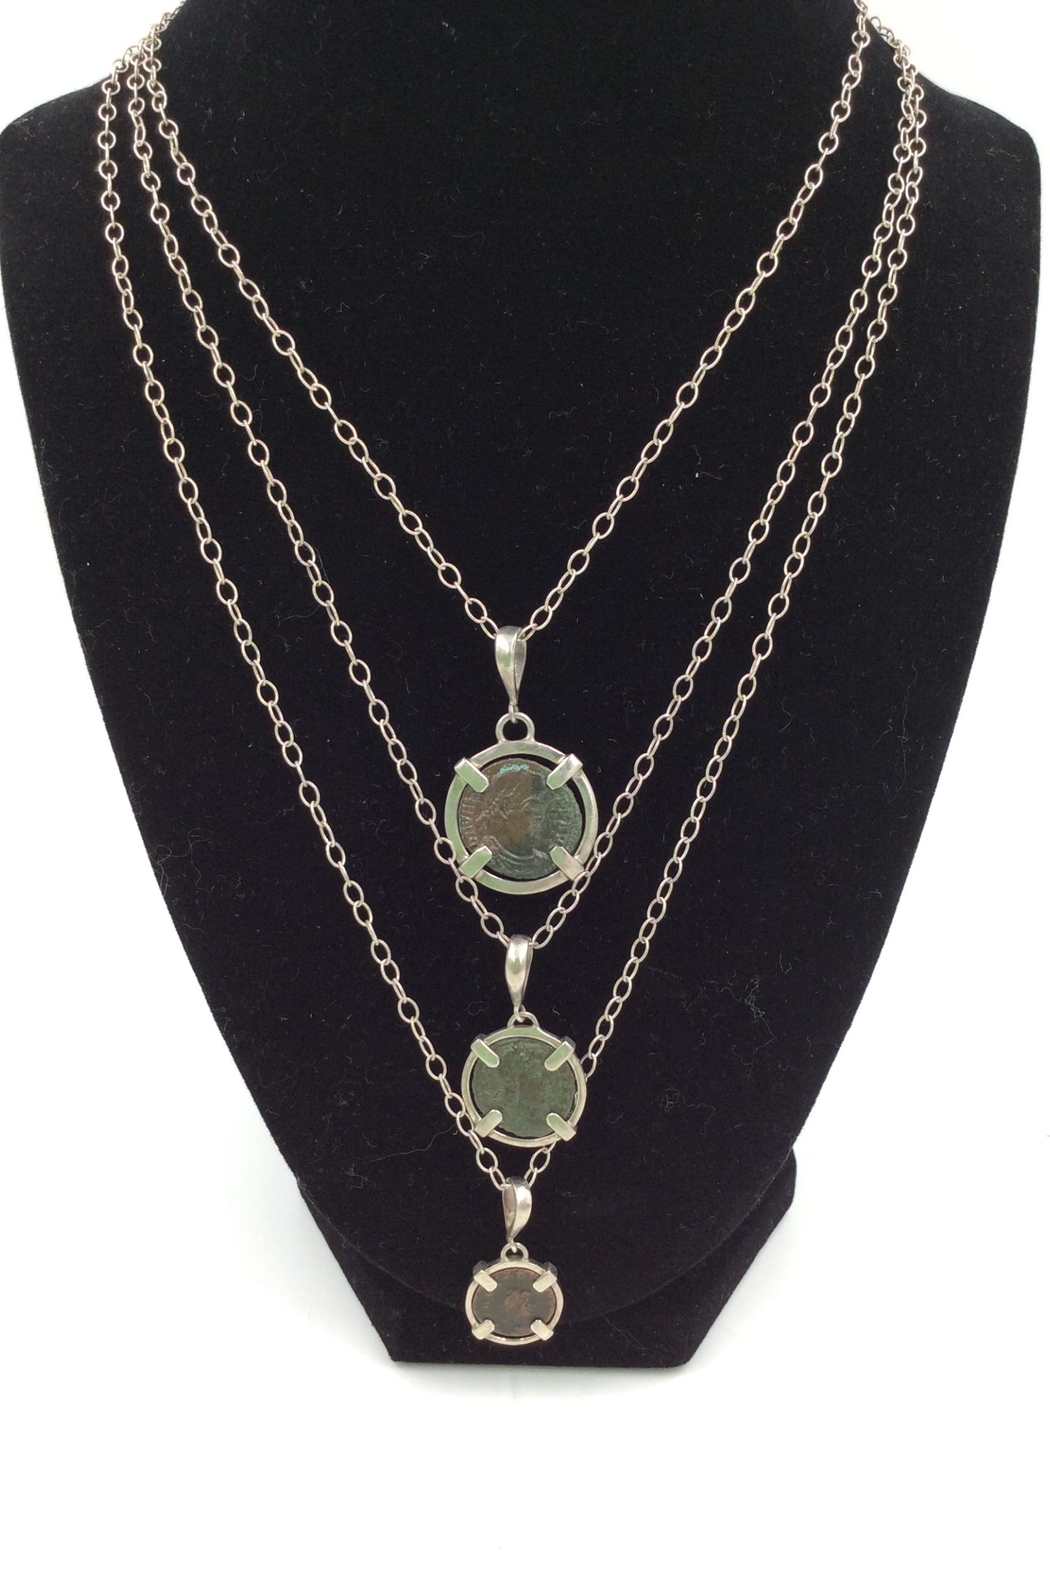 LJ Jewelry Designs Ancient Coin Necklace - Main Image